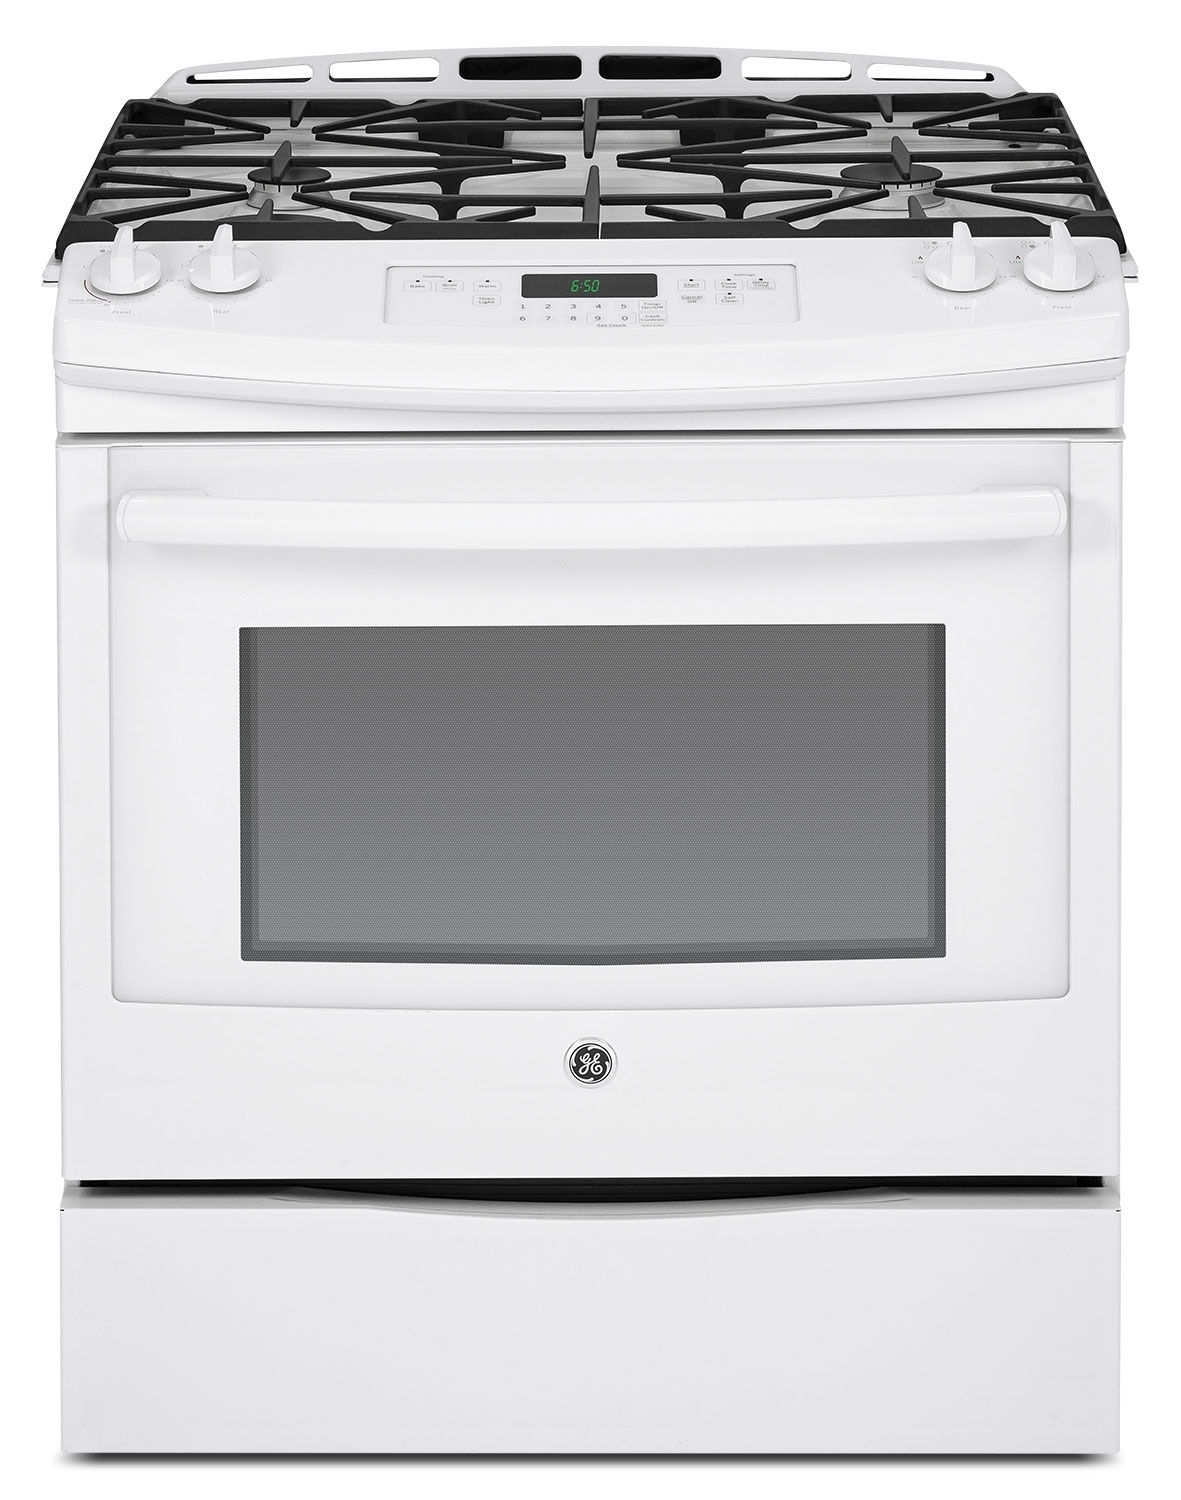 Cooking Products - GE White Slide-In Gas Range (5.4 Cu. Ft.) - JCGS650DEFWW